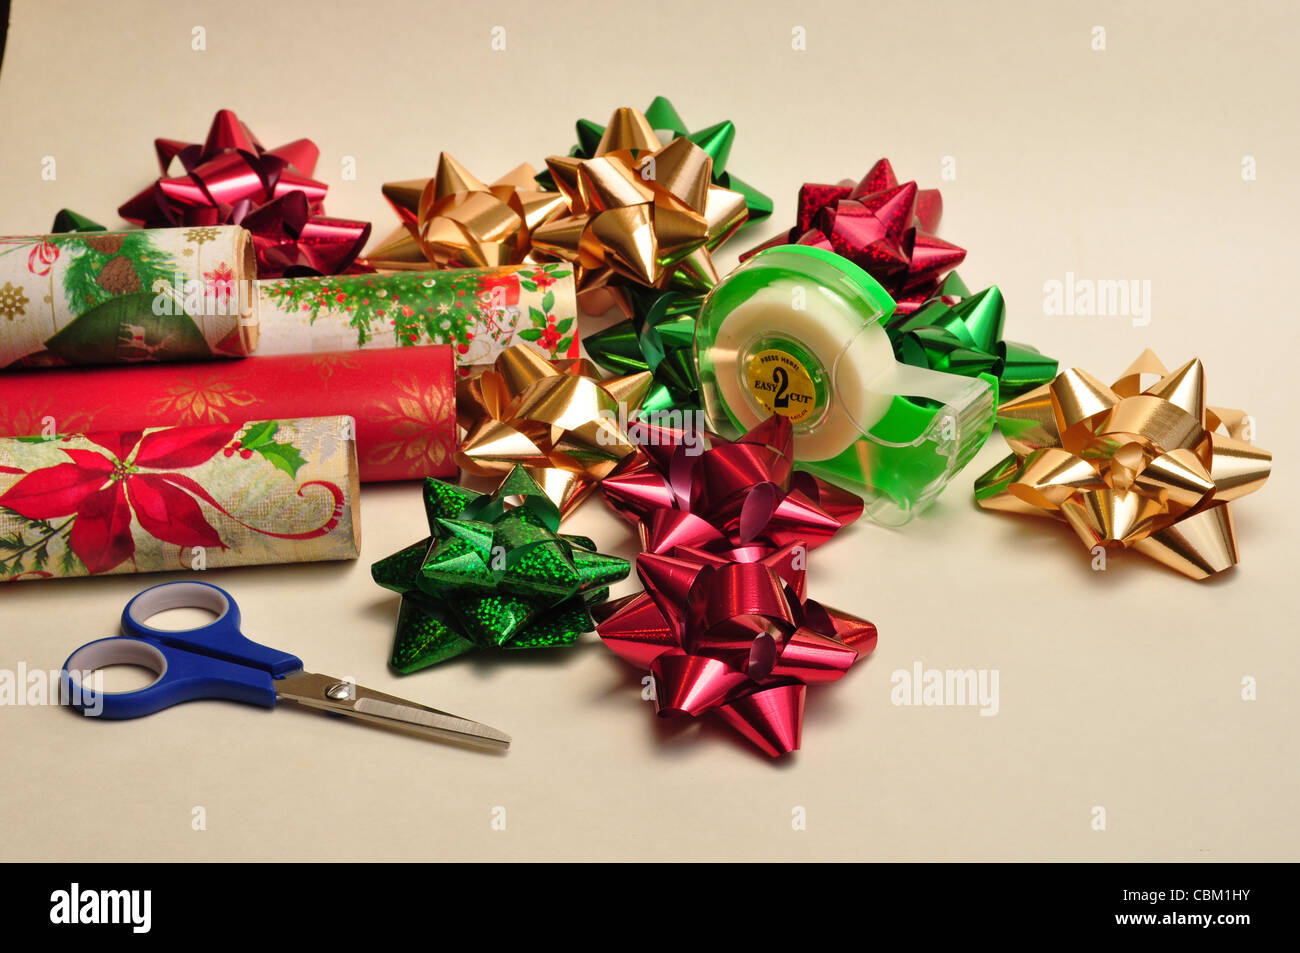 Wrapping paper and bows - Stock Image